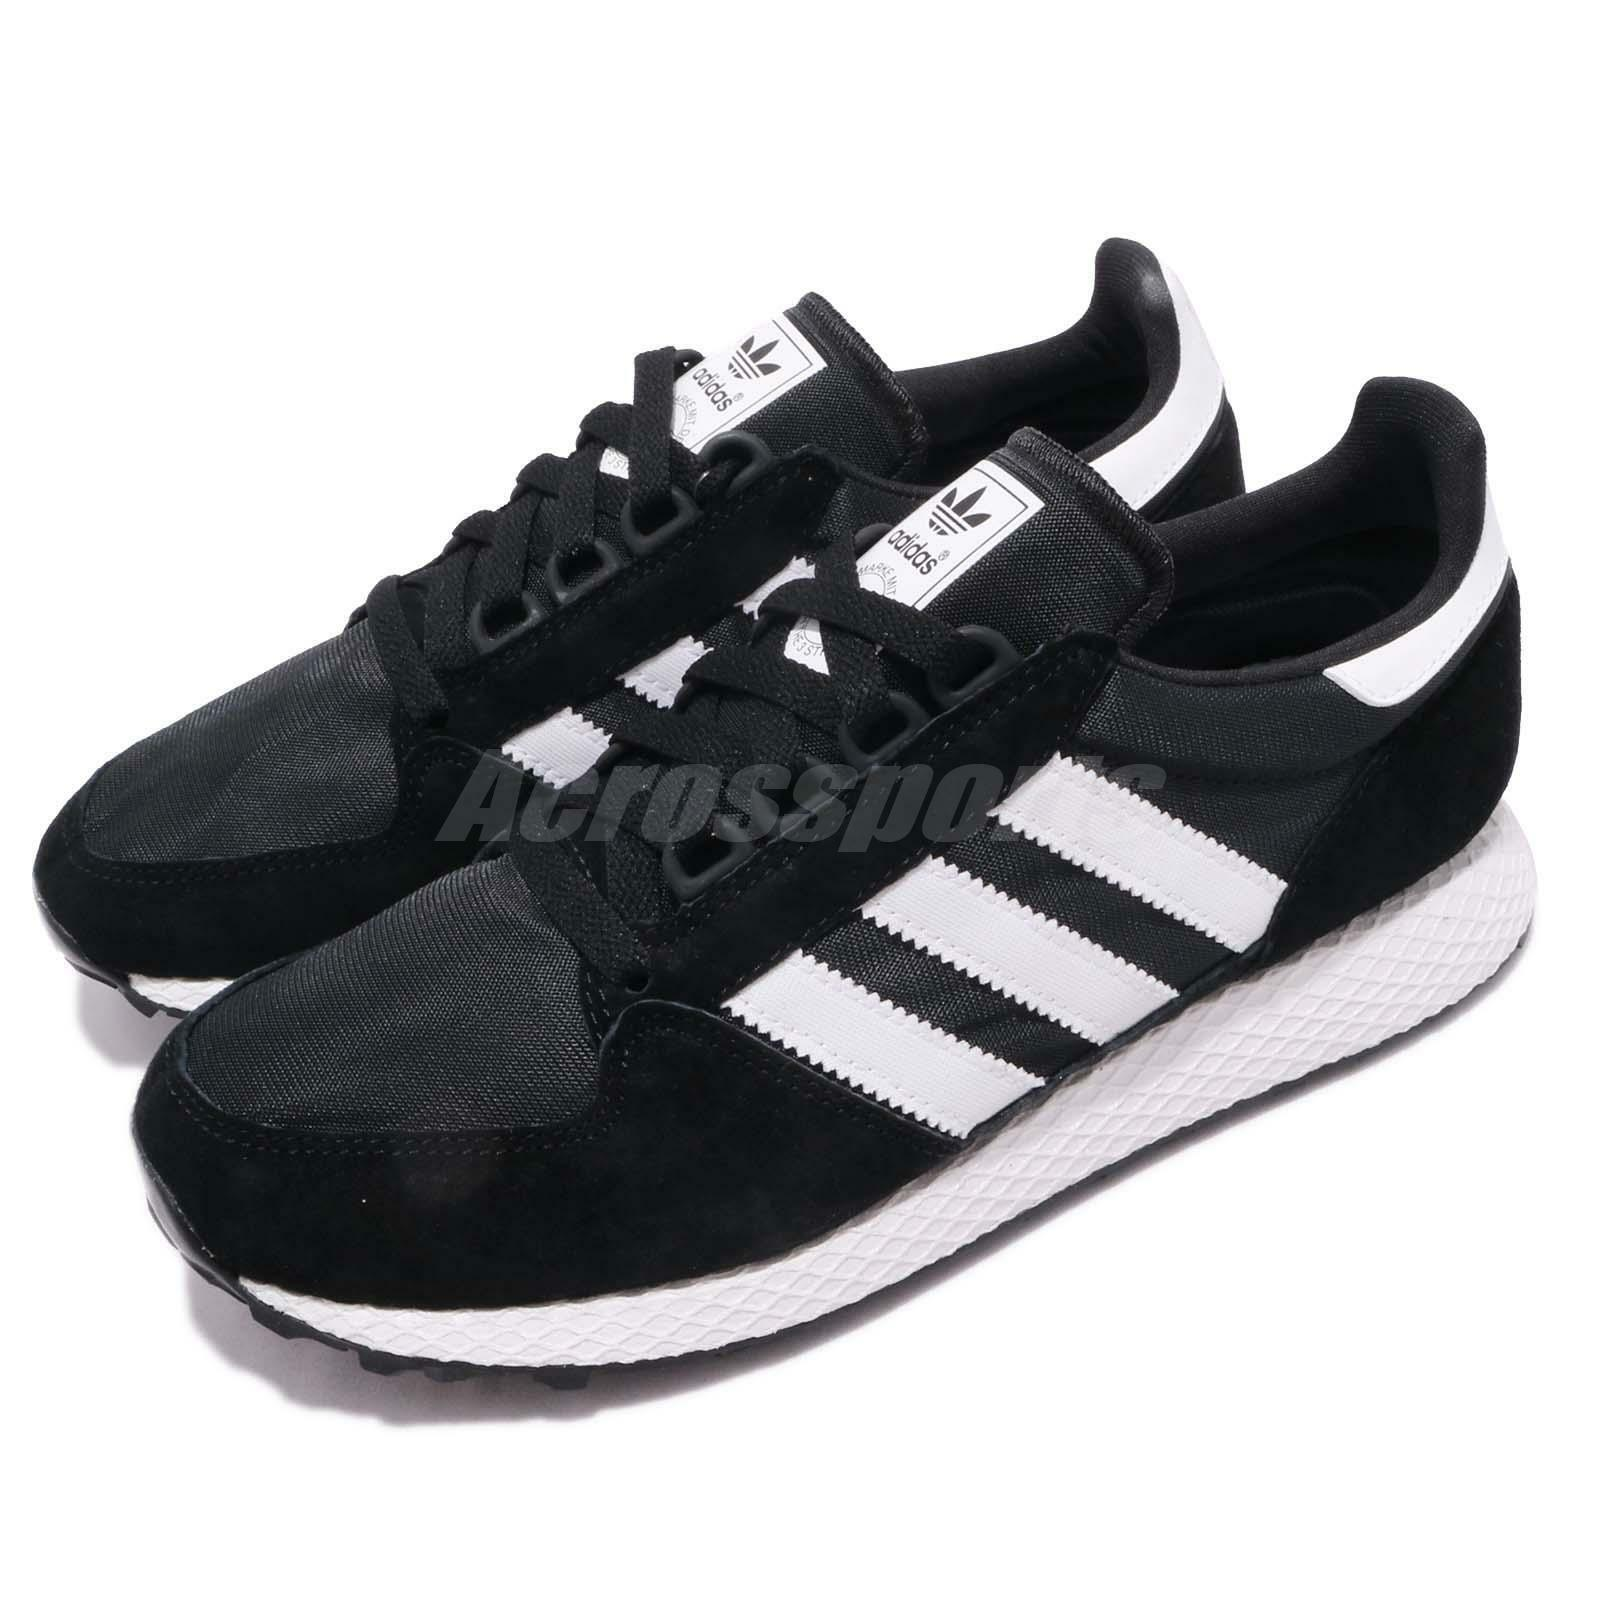 Adidas Originals Forest Grove Black White Men Running Casual shoes Sneaker B41550